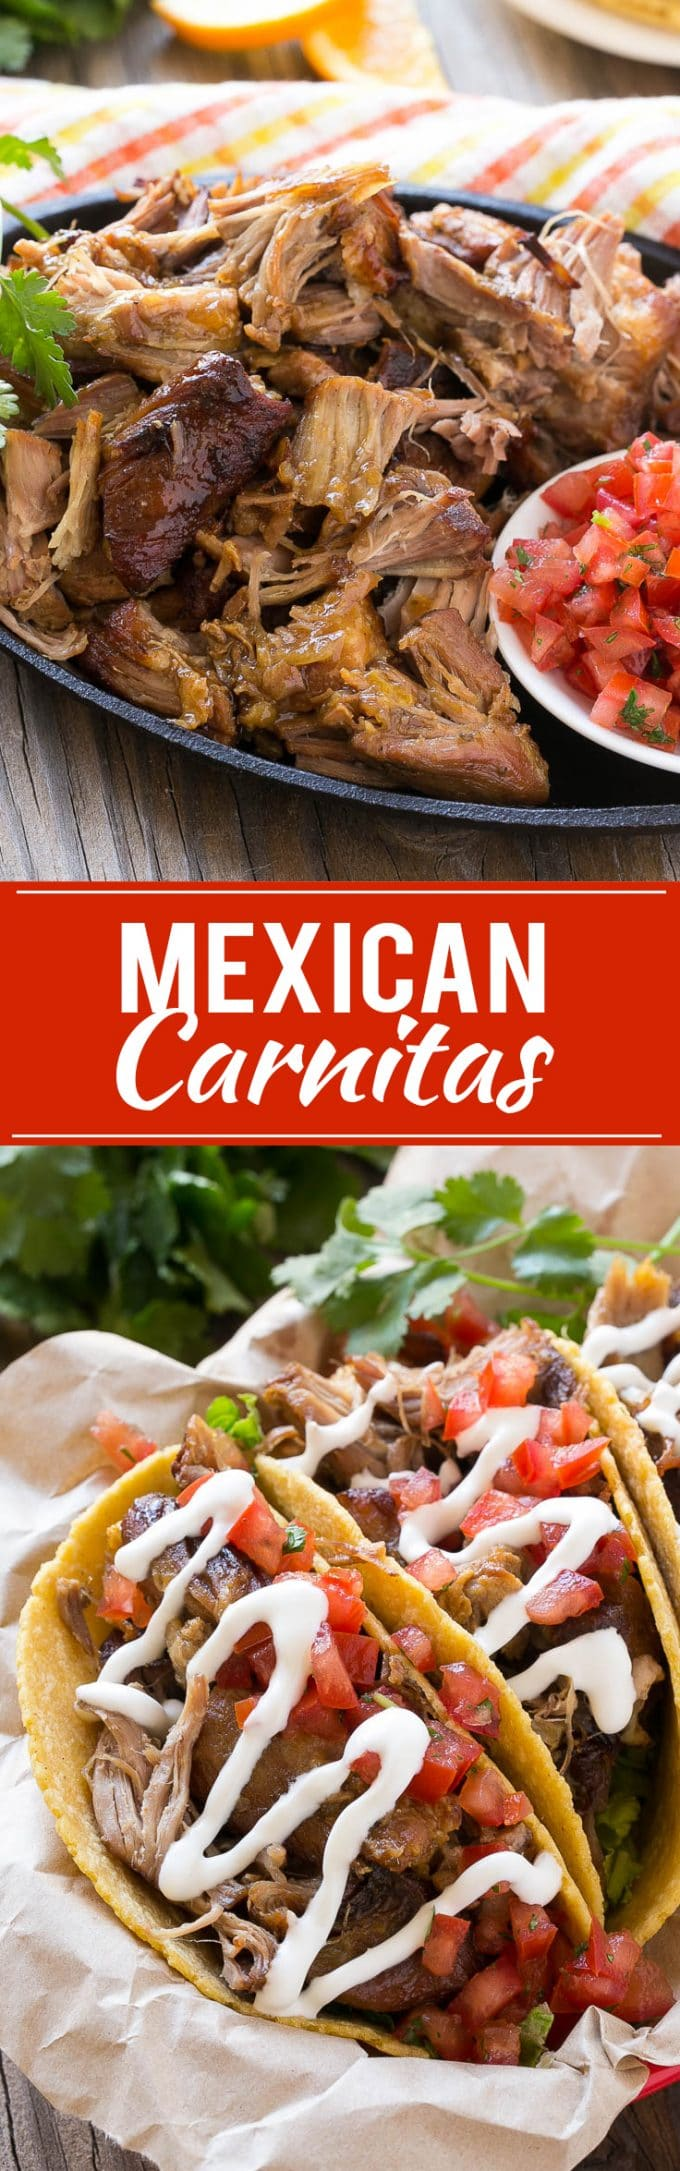 Mexican Pork Carnitas Recipe | Easy Pork Carnitas | Best Pork Carnitas